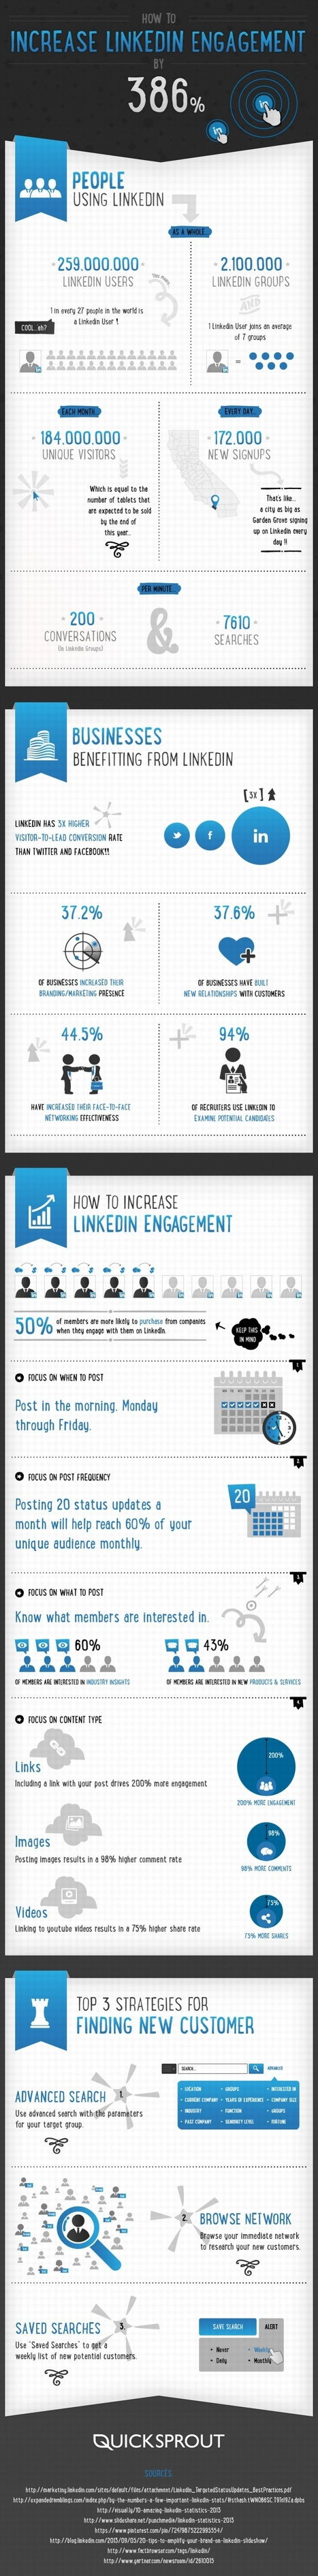 How to Boost LinkedIn Engagement | Social Media, Digital Marketing | Scoop.it